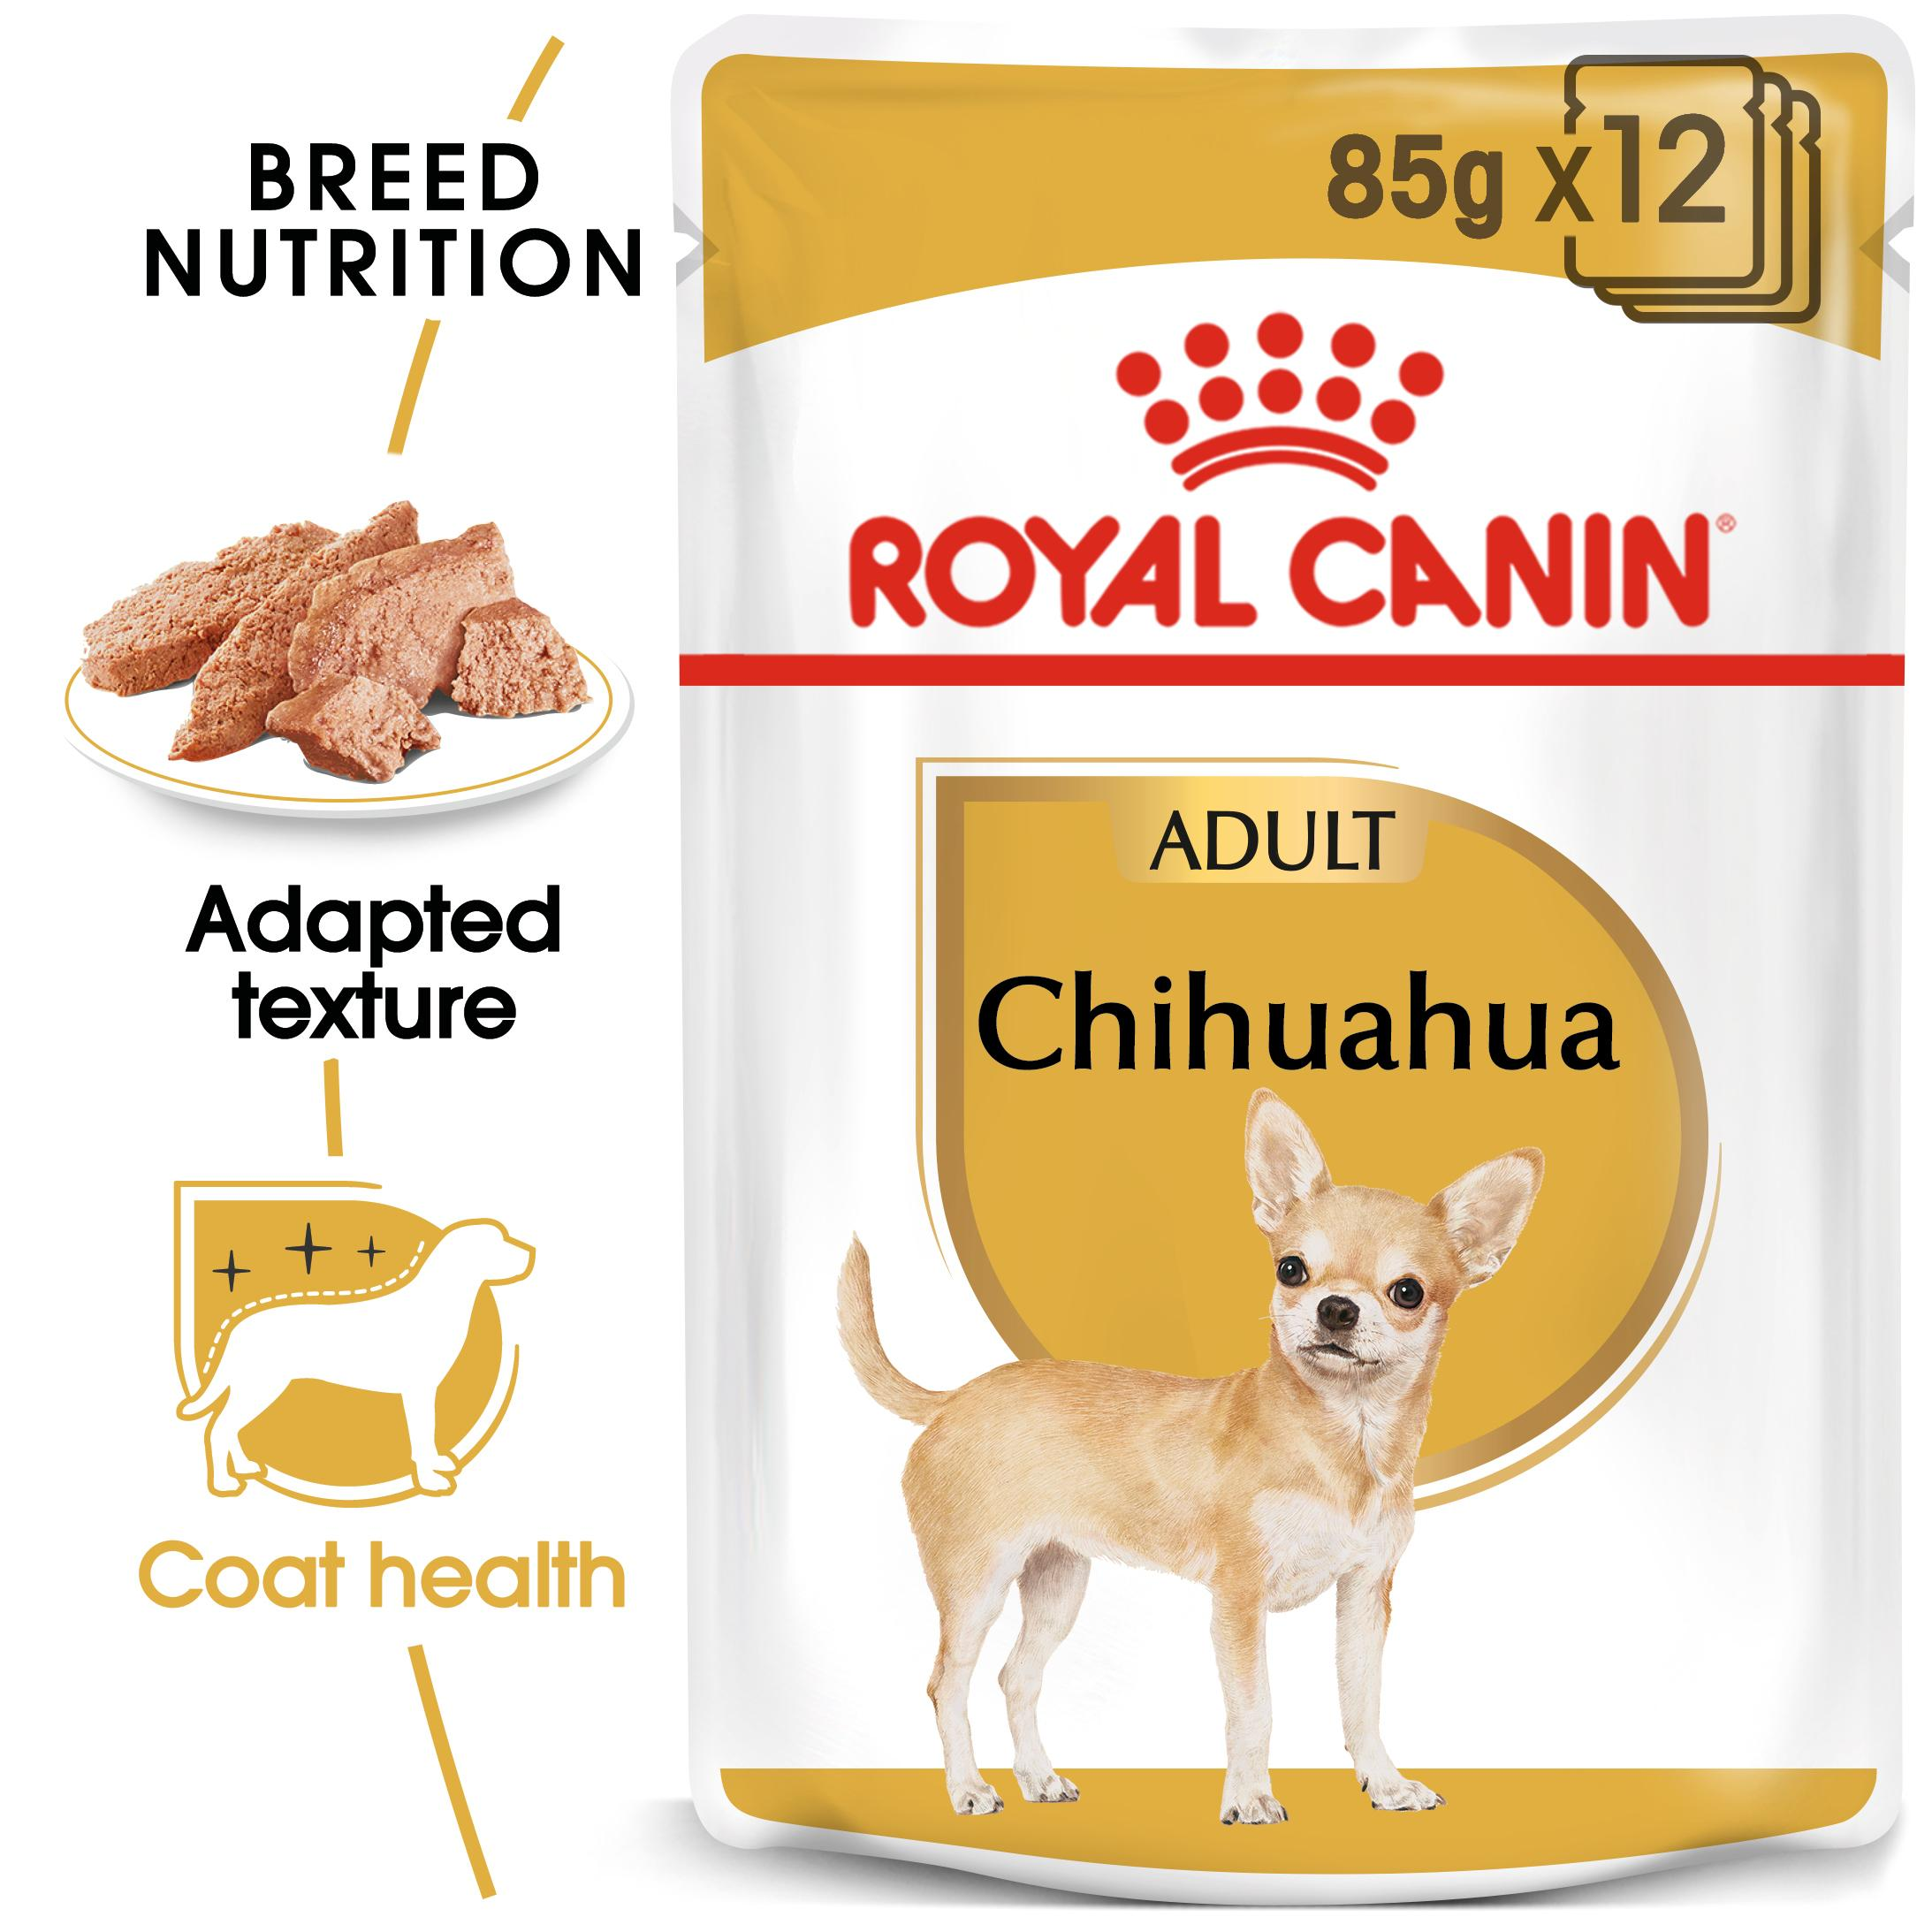 ROYAL CANIN® Chihuahua Adult 85g